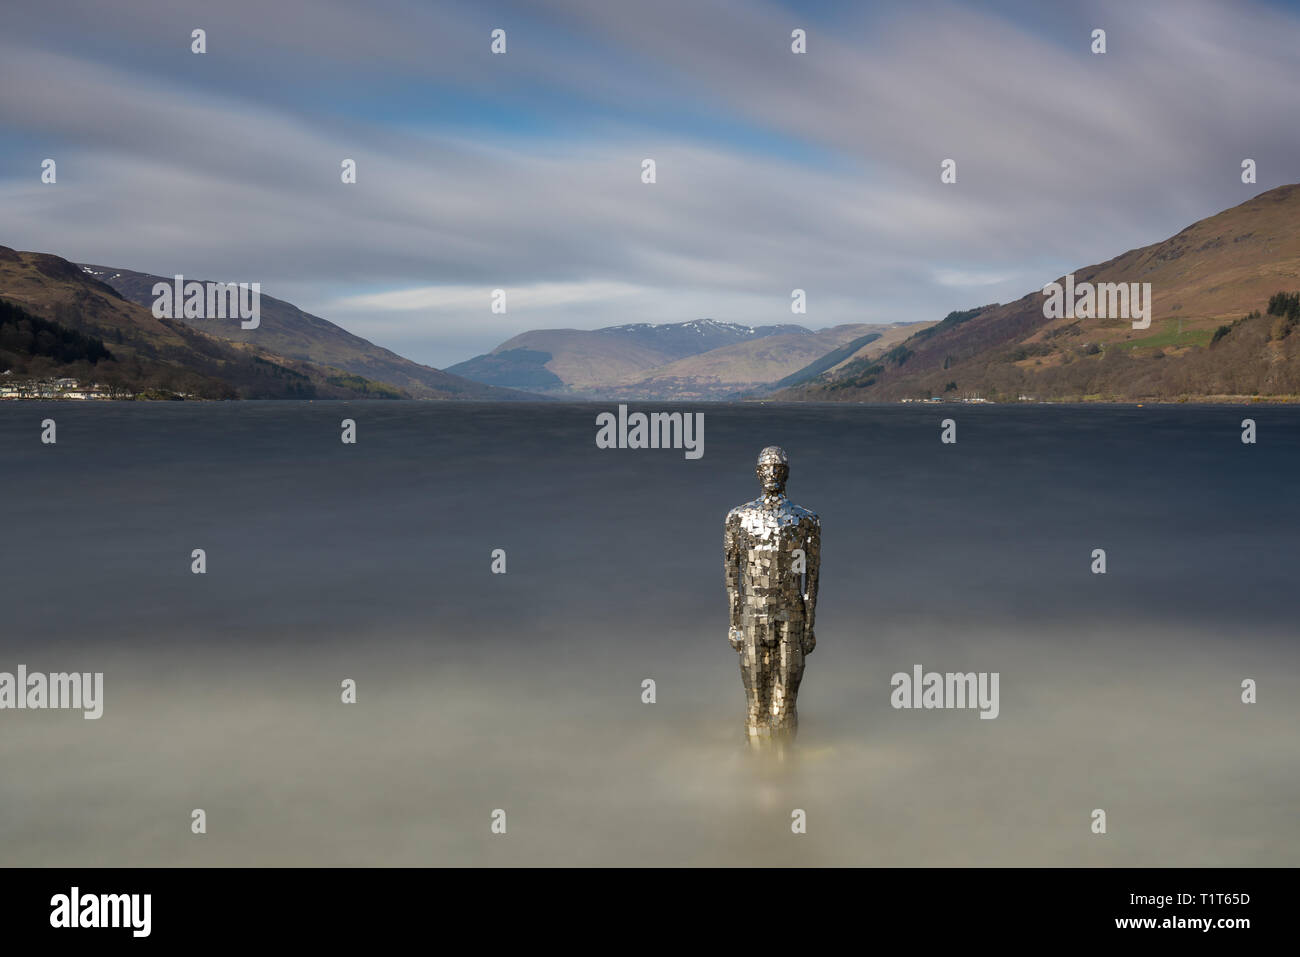 The famous mirror man sculpture that sits in Loch Earn, Perth and Kinross, Scotland - Stock Image